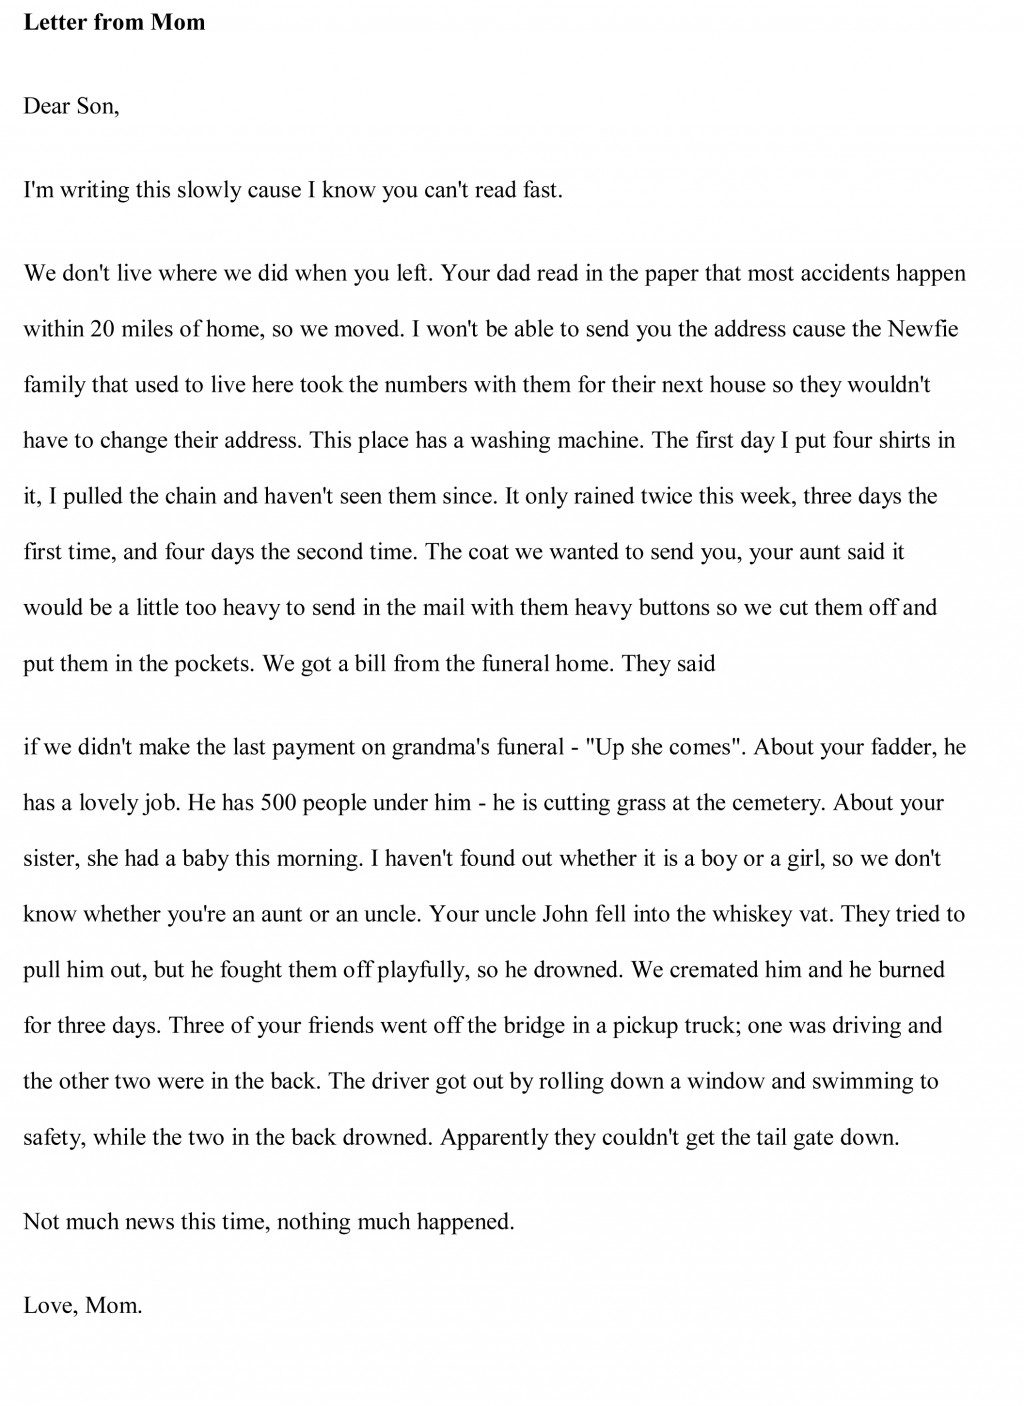 013 Essay Example Funny Free Sample Persuasive Excellent College Level Large